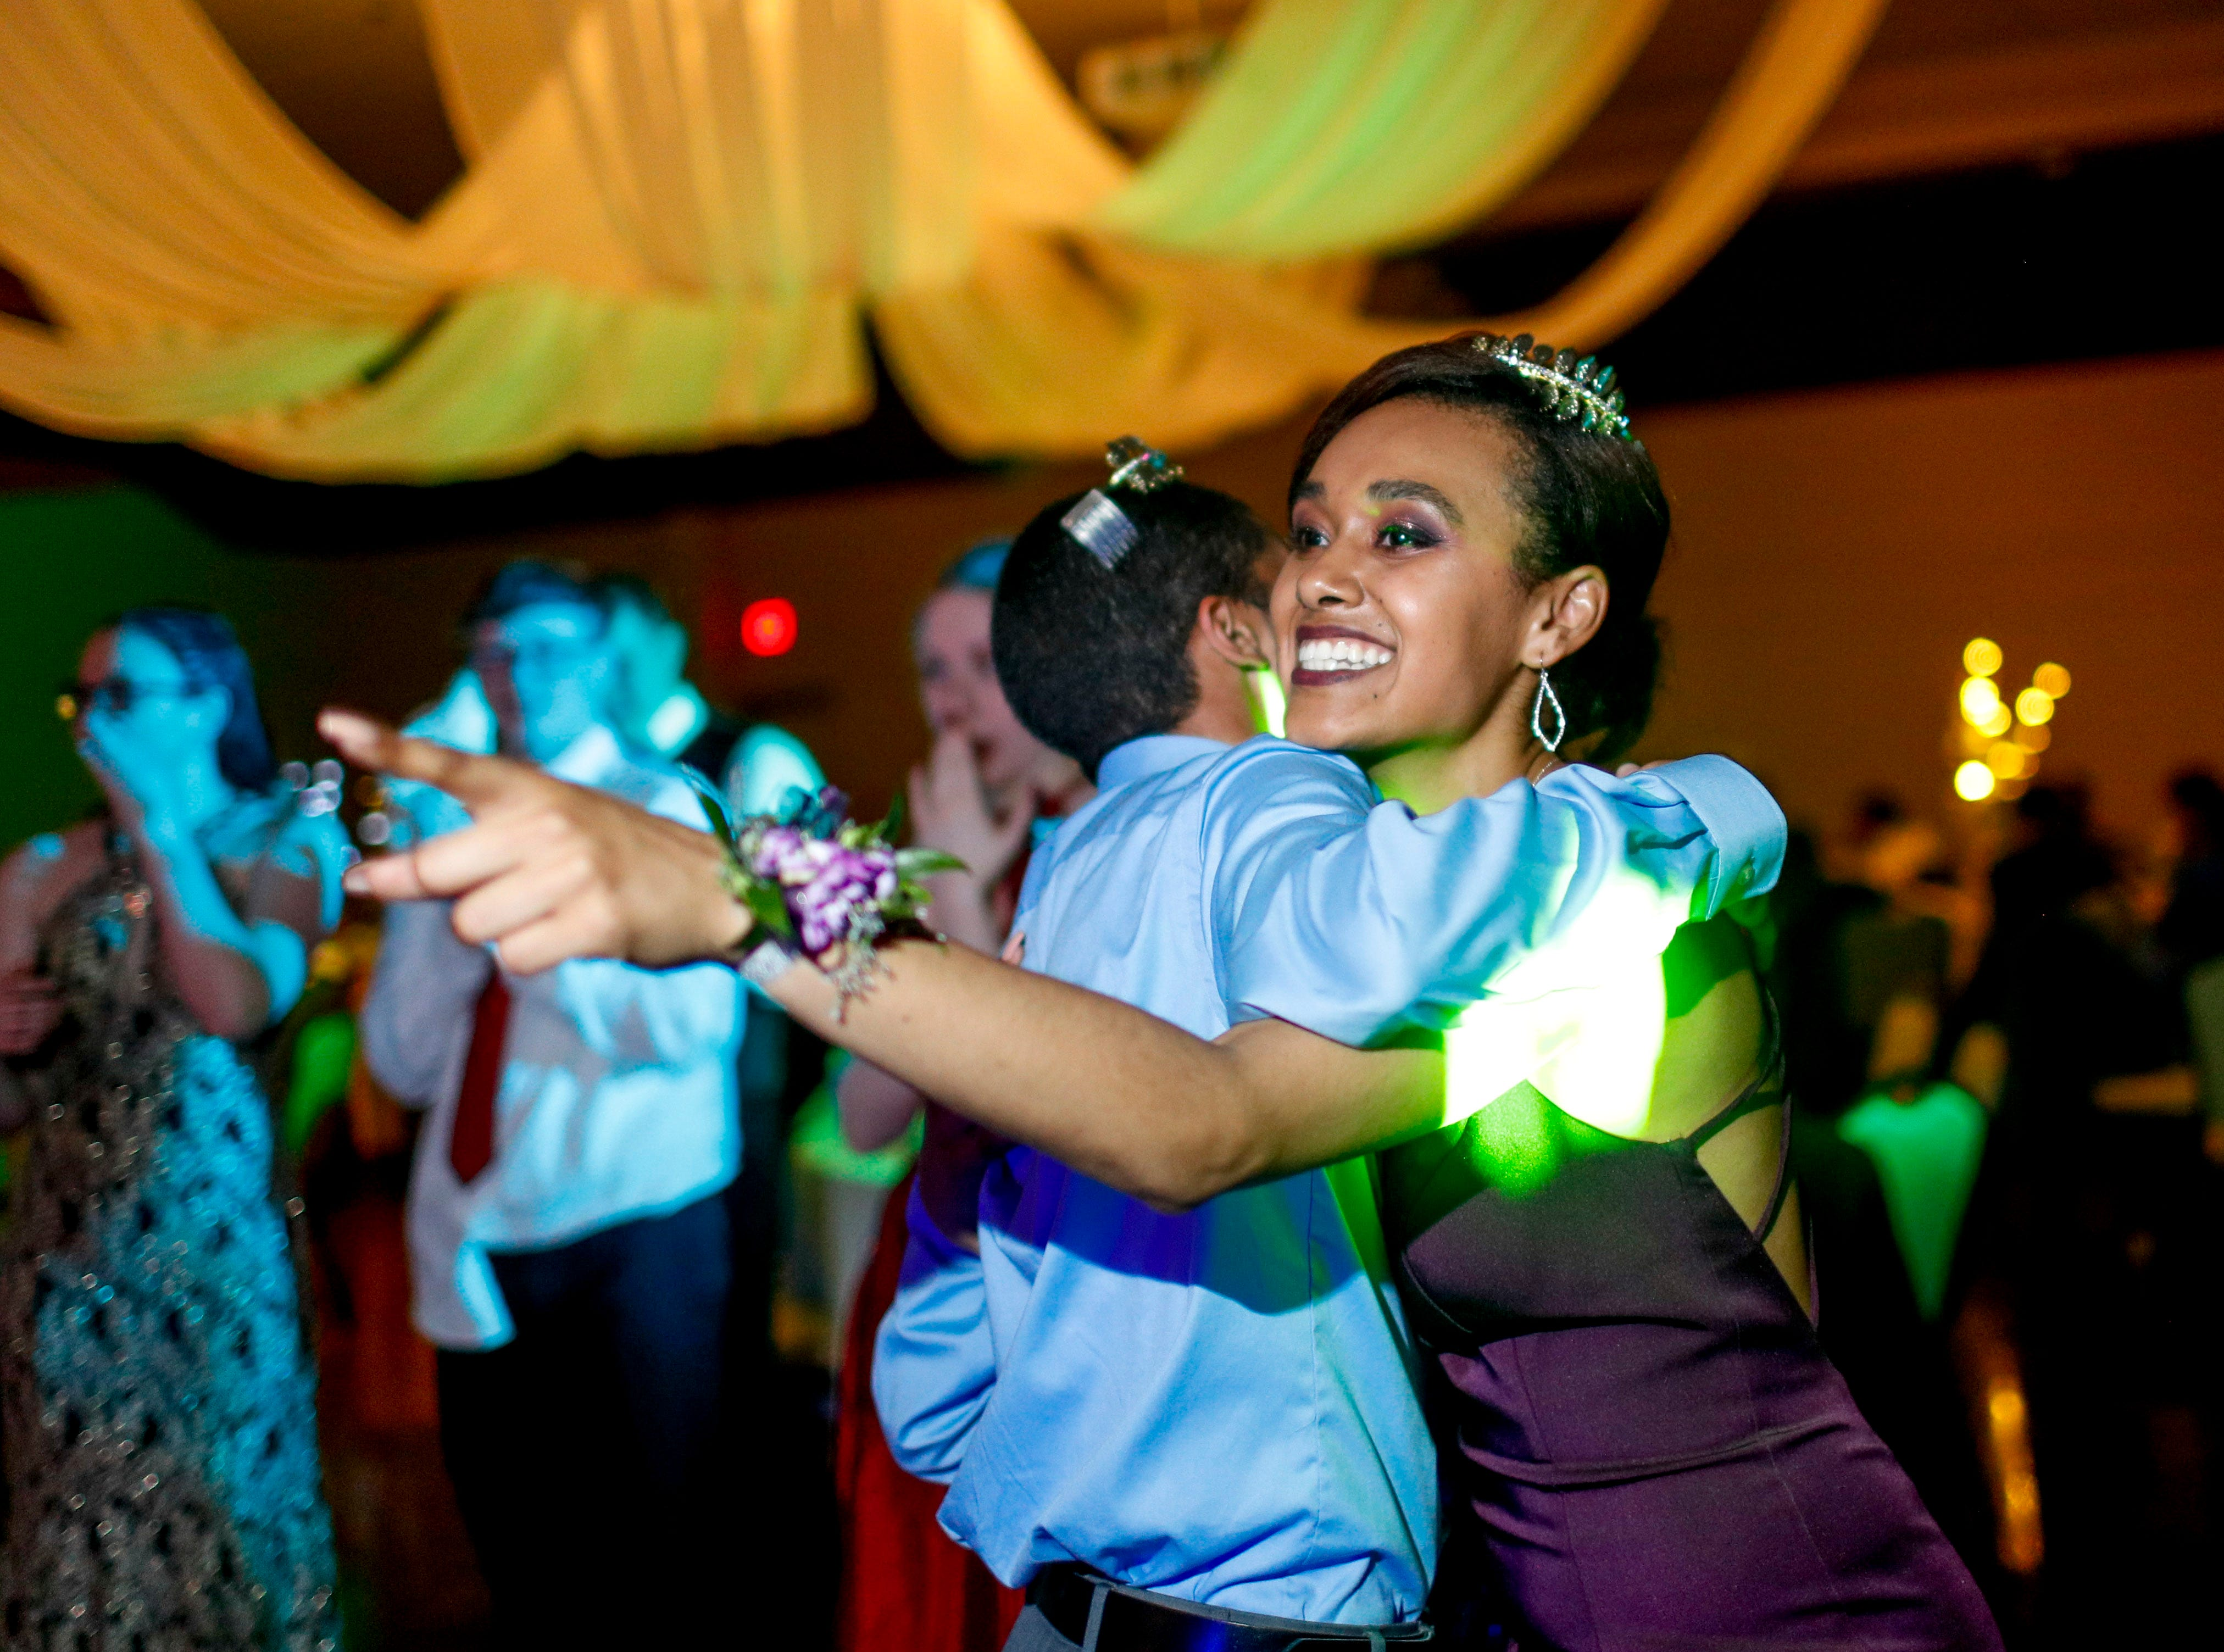 """Hannah Salas, after being named Prom Queen, embraces and dances with Dionte Berry, Prom King, at Fort Campbell High School's 2019 prom themed """"A Night in Athens"""" at Valor Hall in Oak Grove, KY., on Saturday, April 20, 2019."""